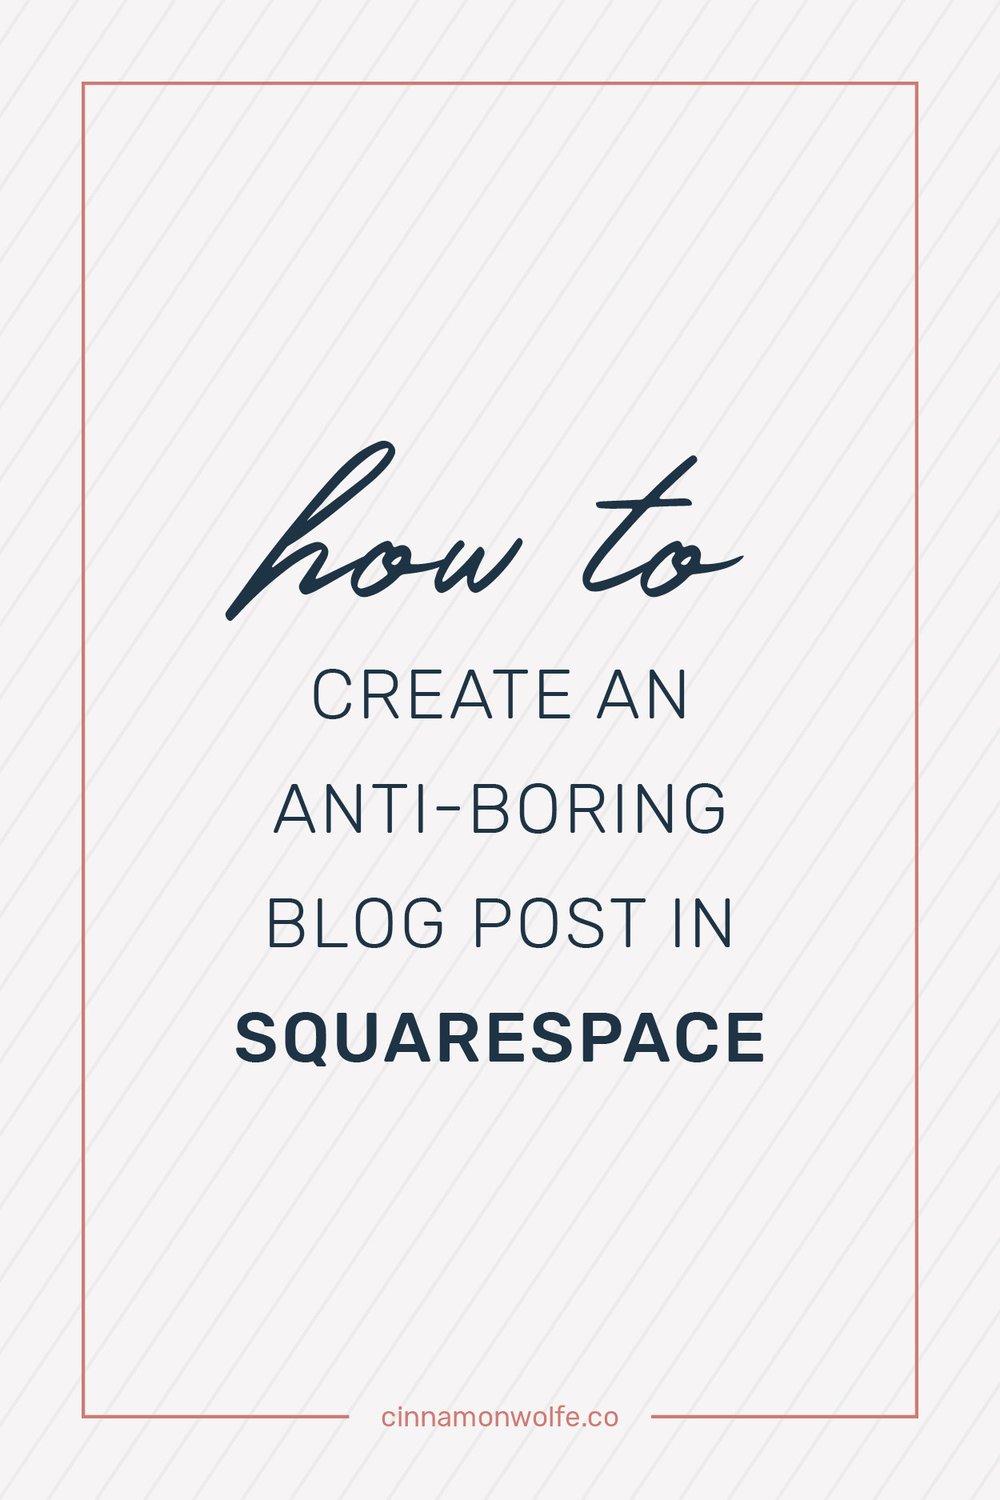 creating an interesting blog post in squaresapce